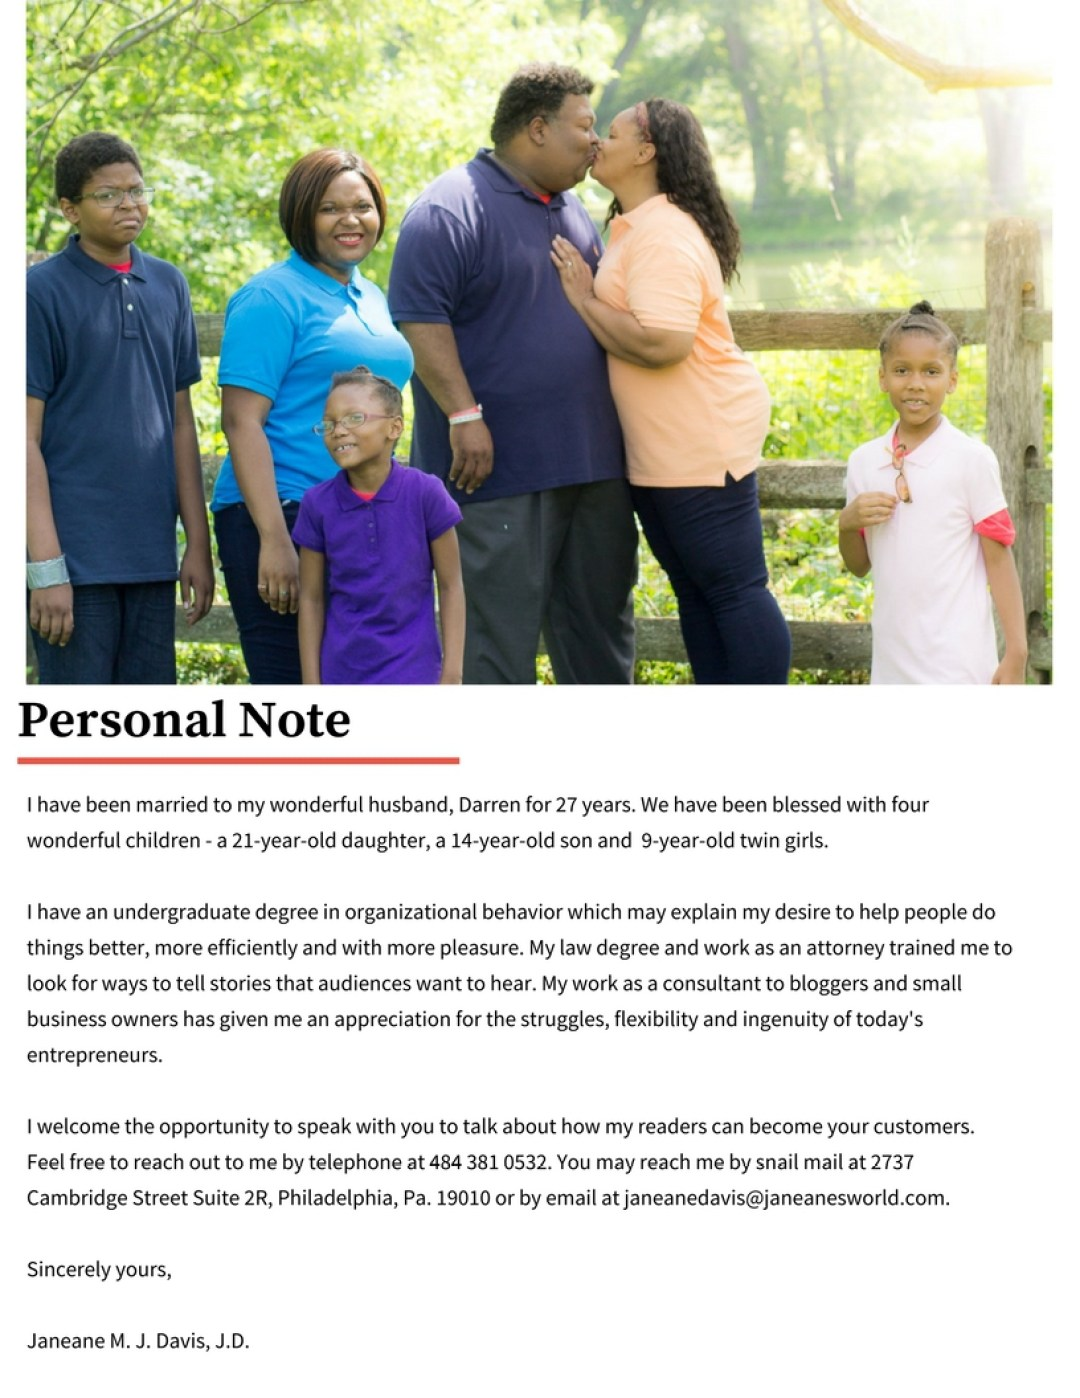 media kit personal note